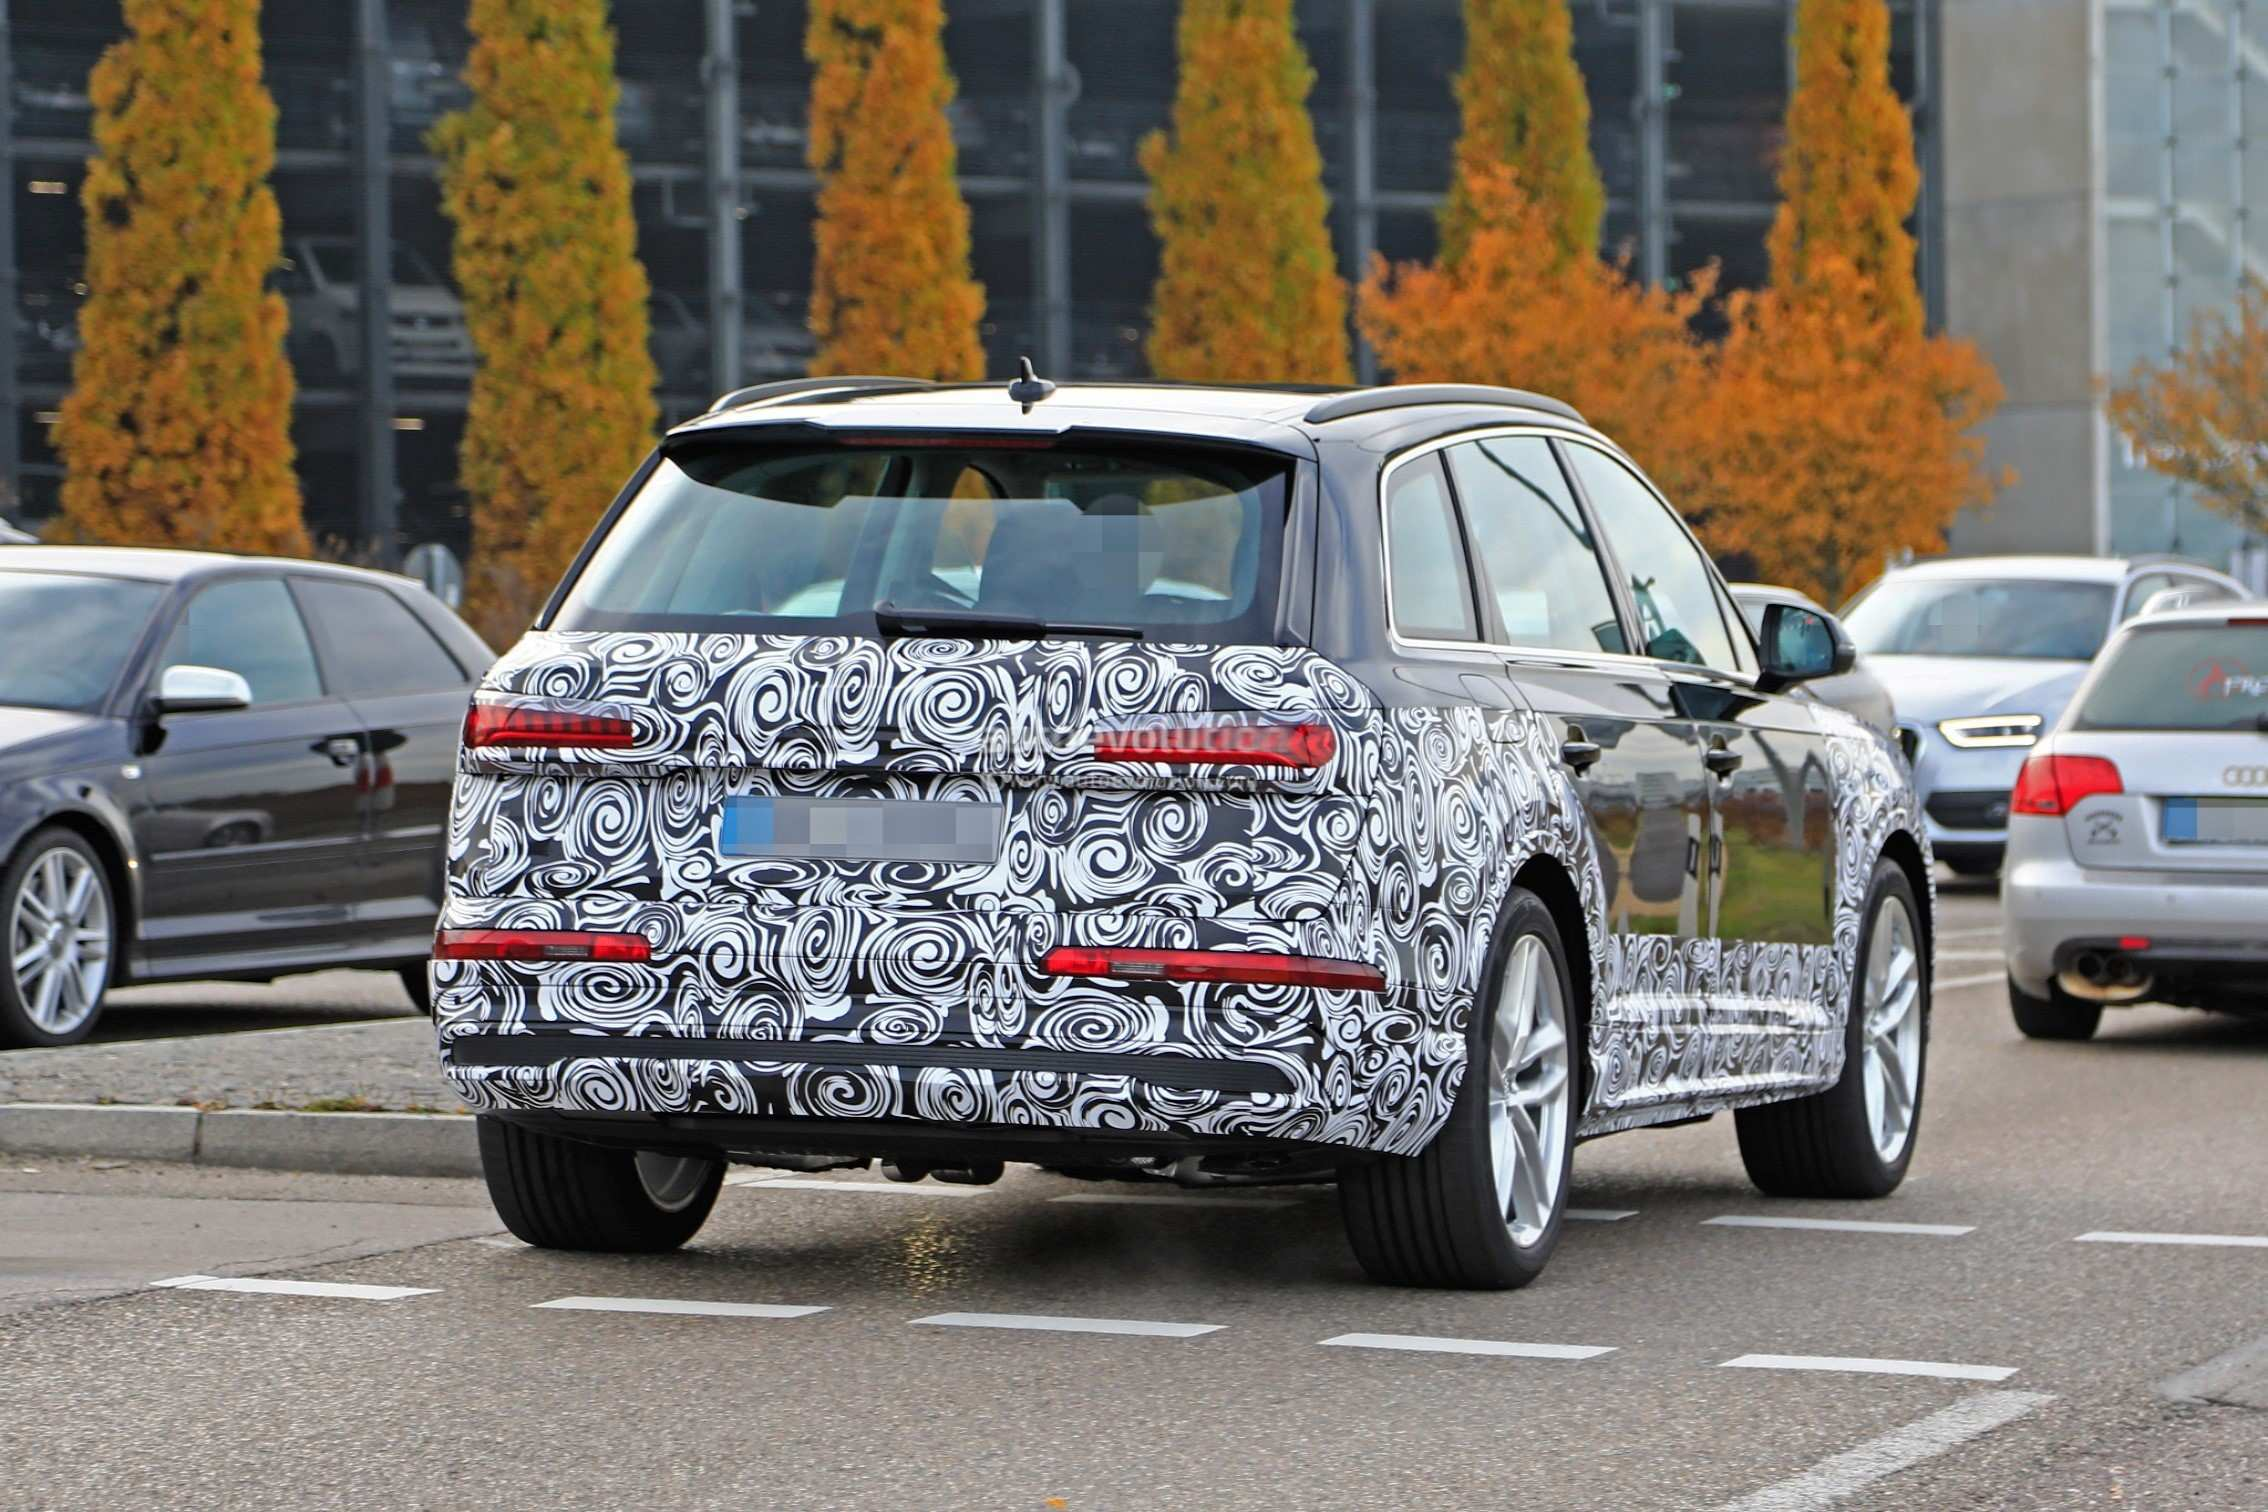 17 Gallery of 2020 Audi Q7 Spy Shoot with 2020 Audi Q7